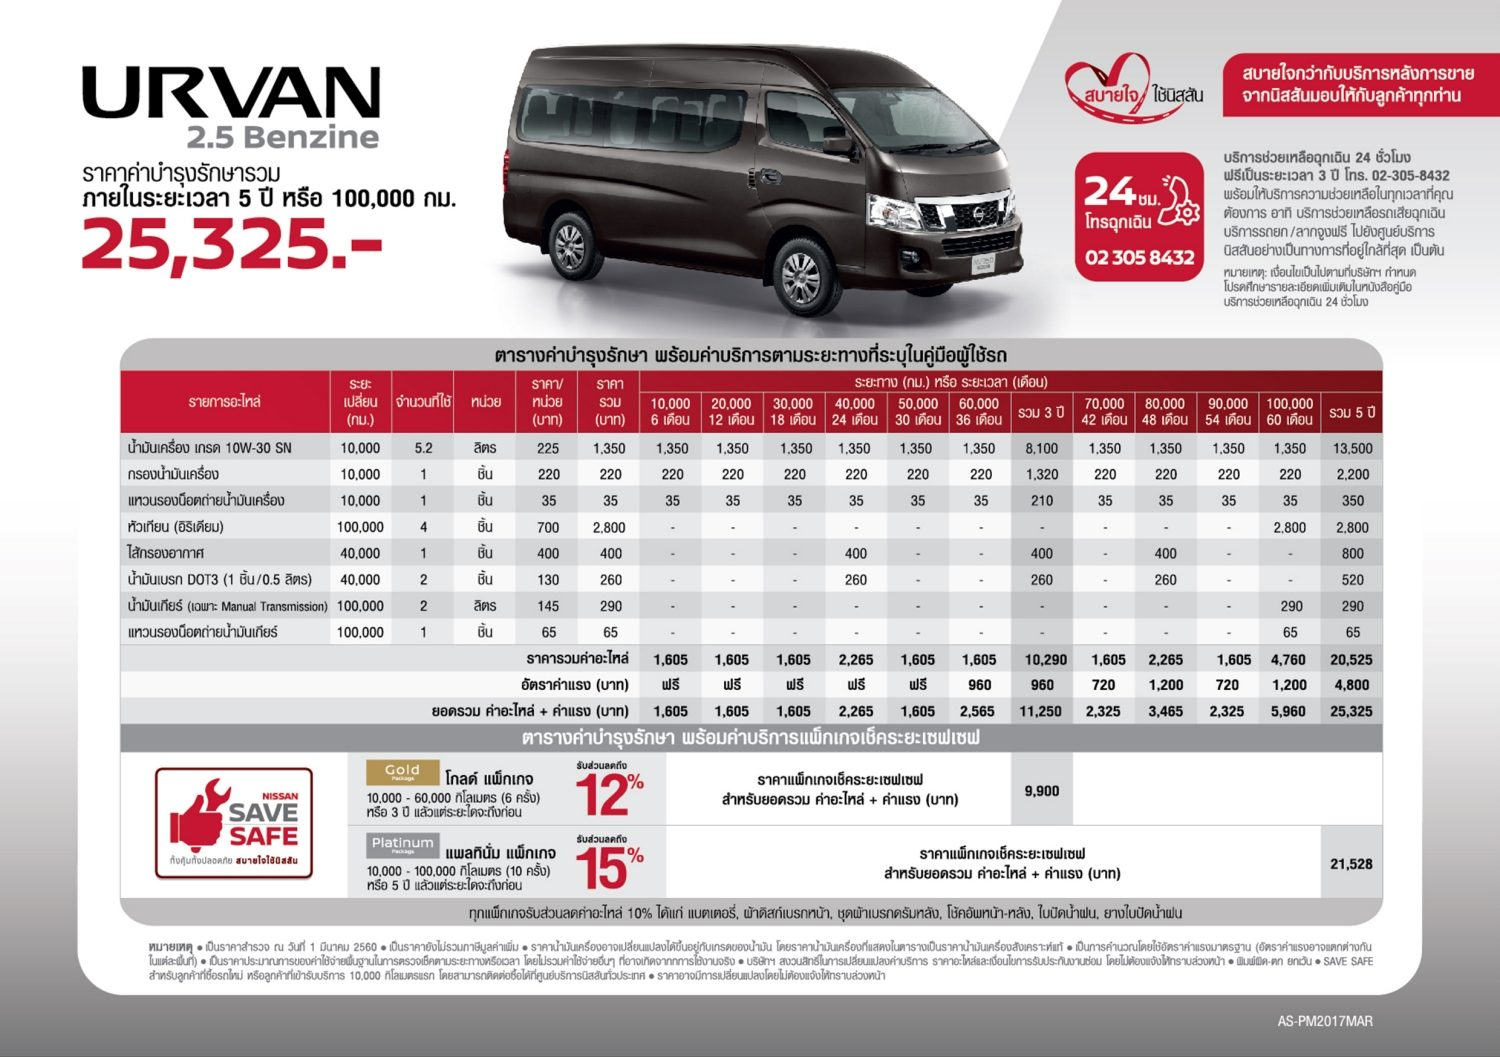 URVAN Maintenance Cost